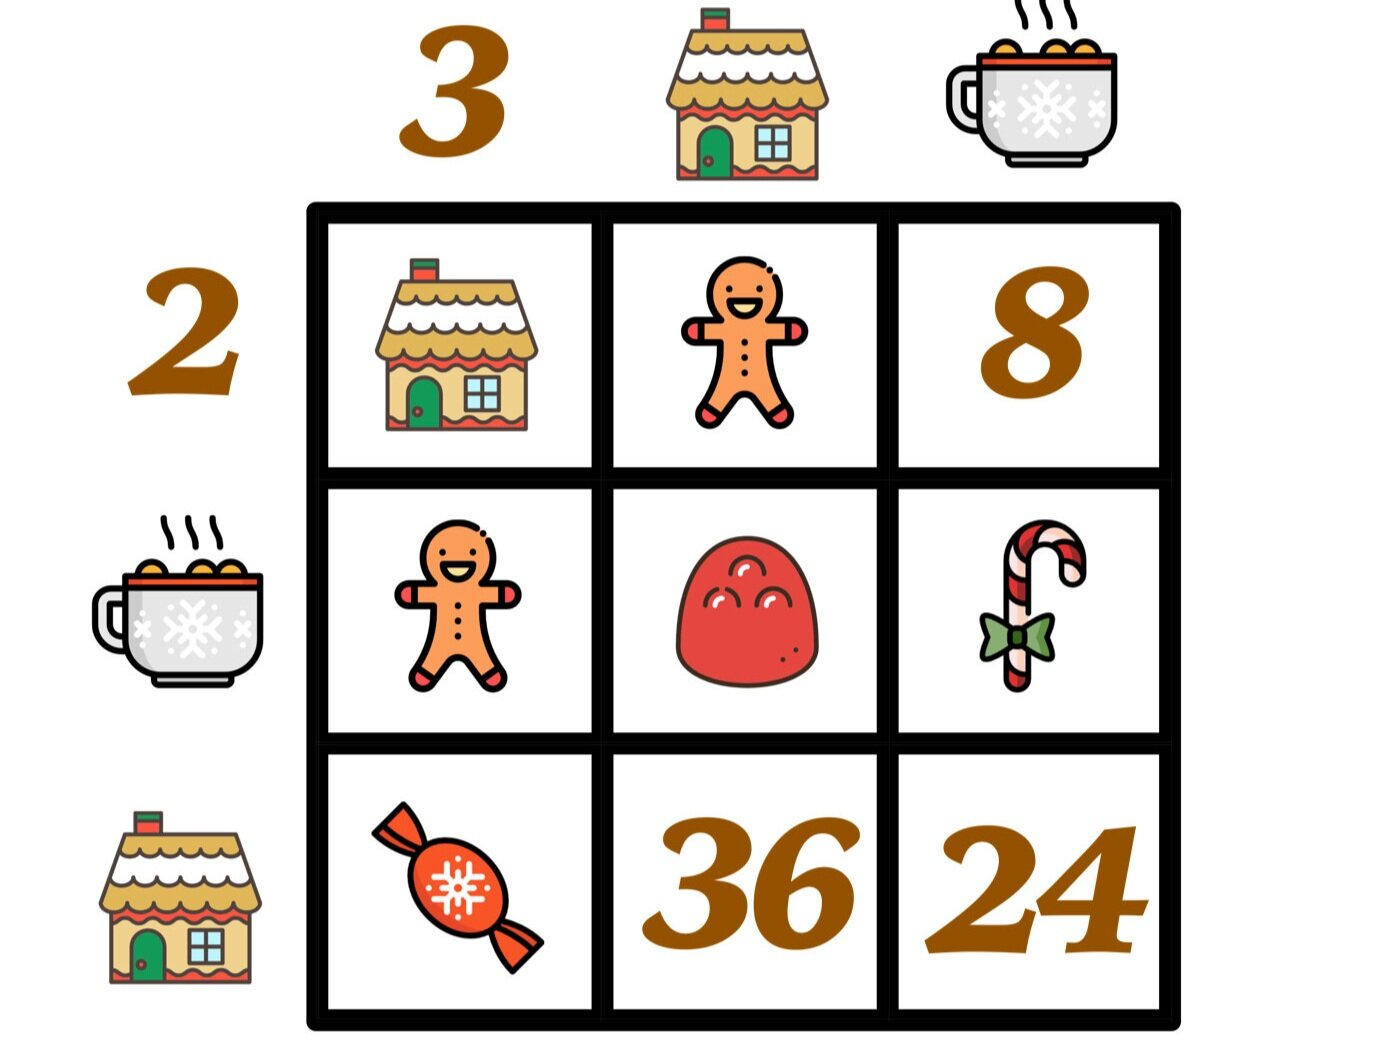 hight resolution of Are Your Students Ready for These Gingerbread House Day Math Puzzles? —  Mashup Math